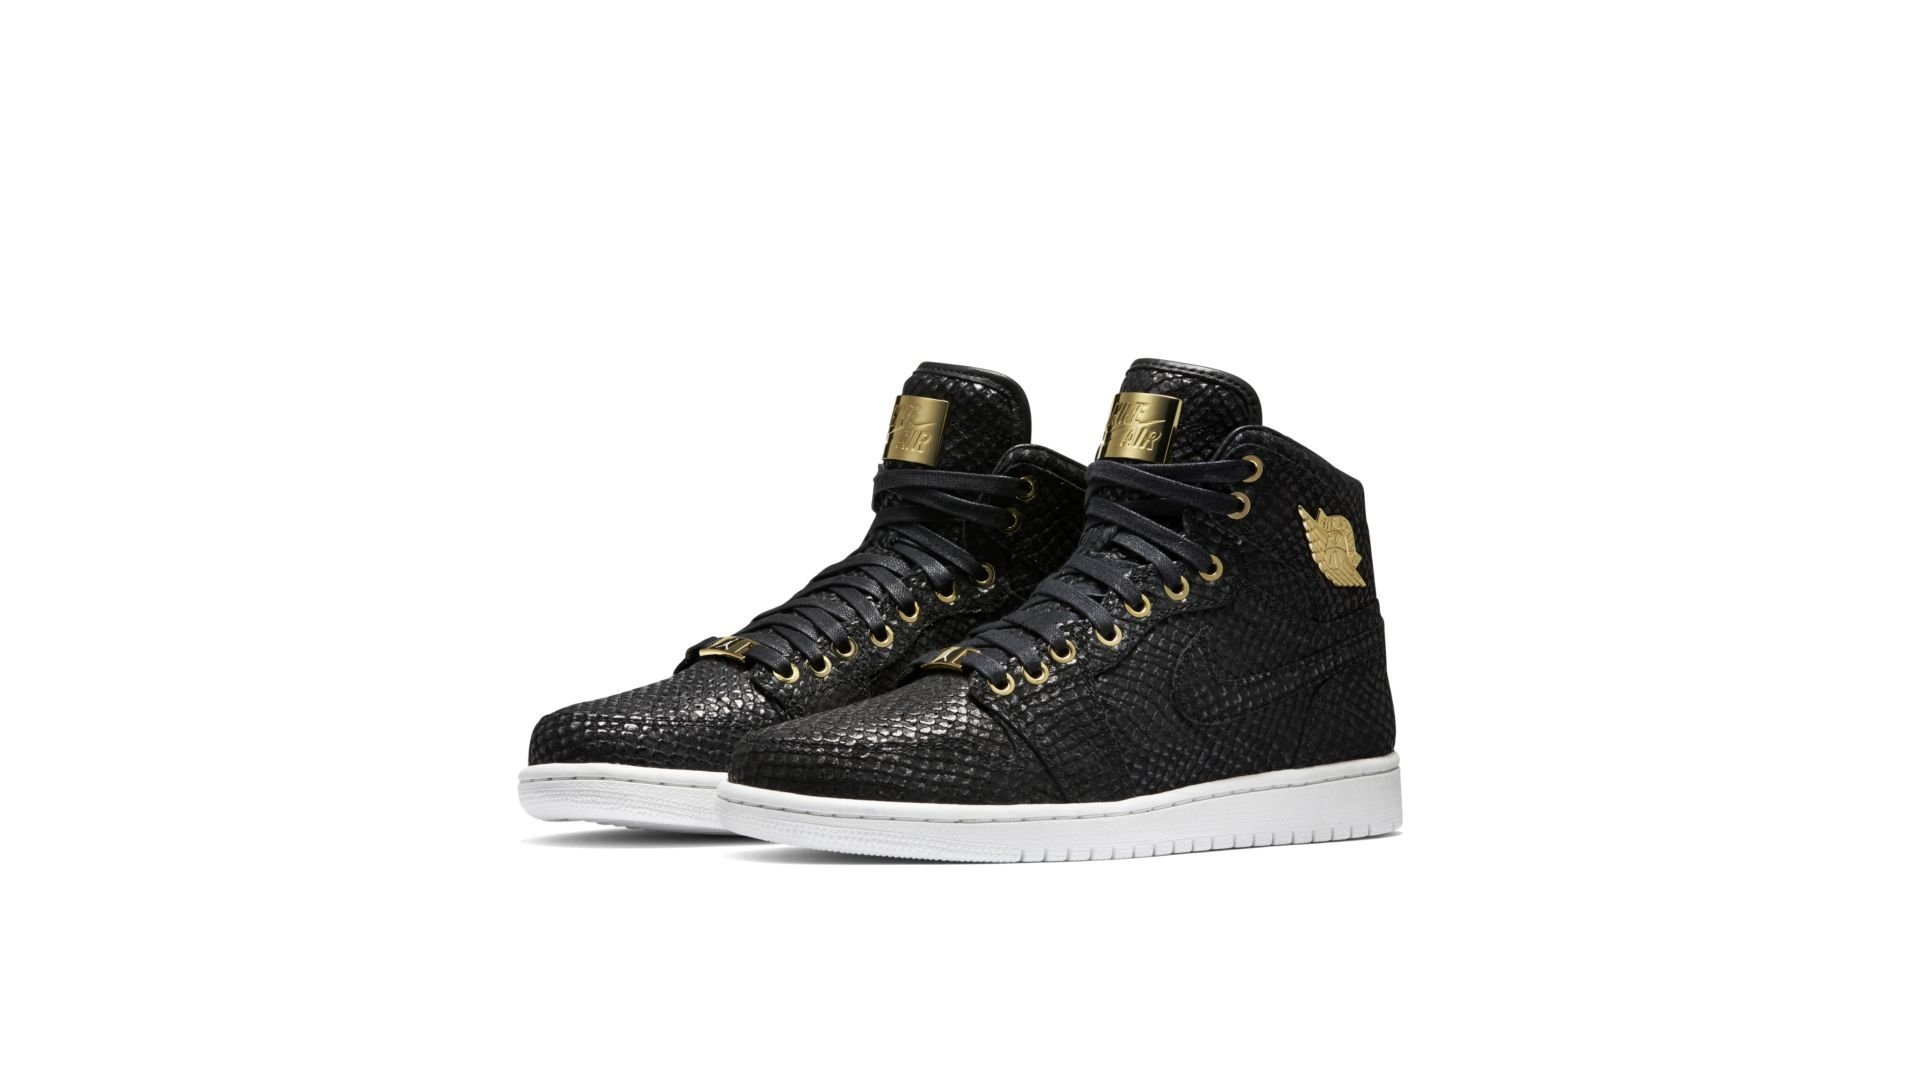 Jordan 1 Retro Pinnacle Black (705075-030)